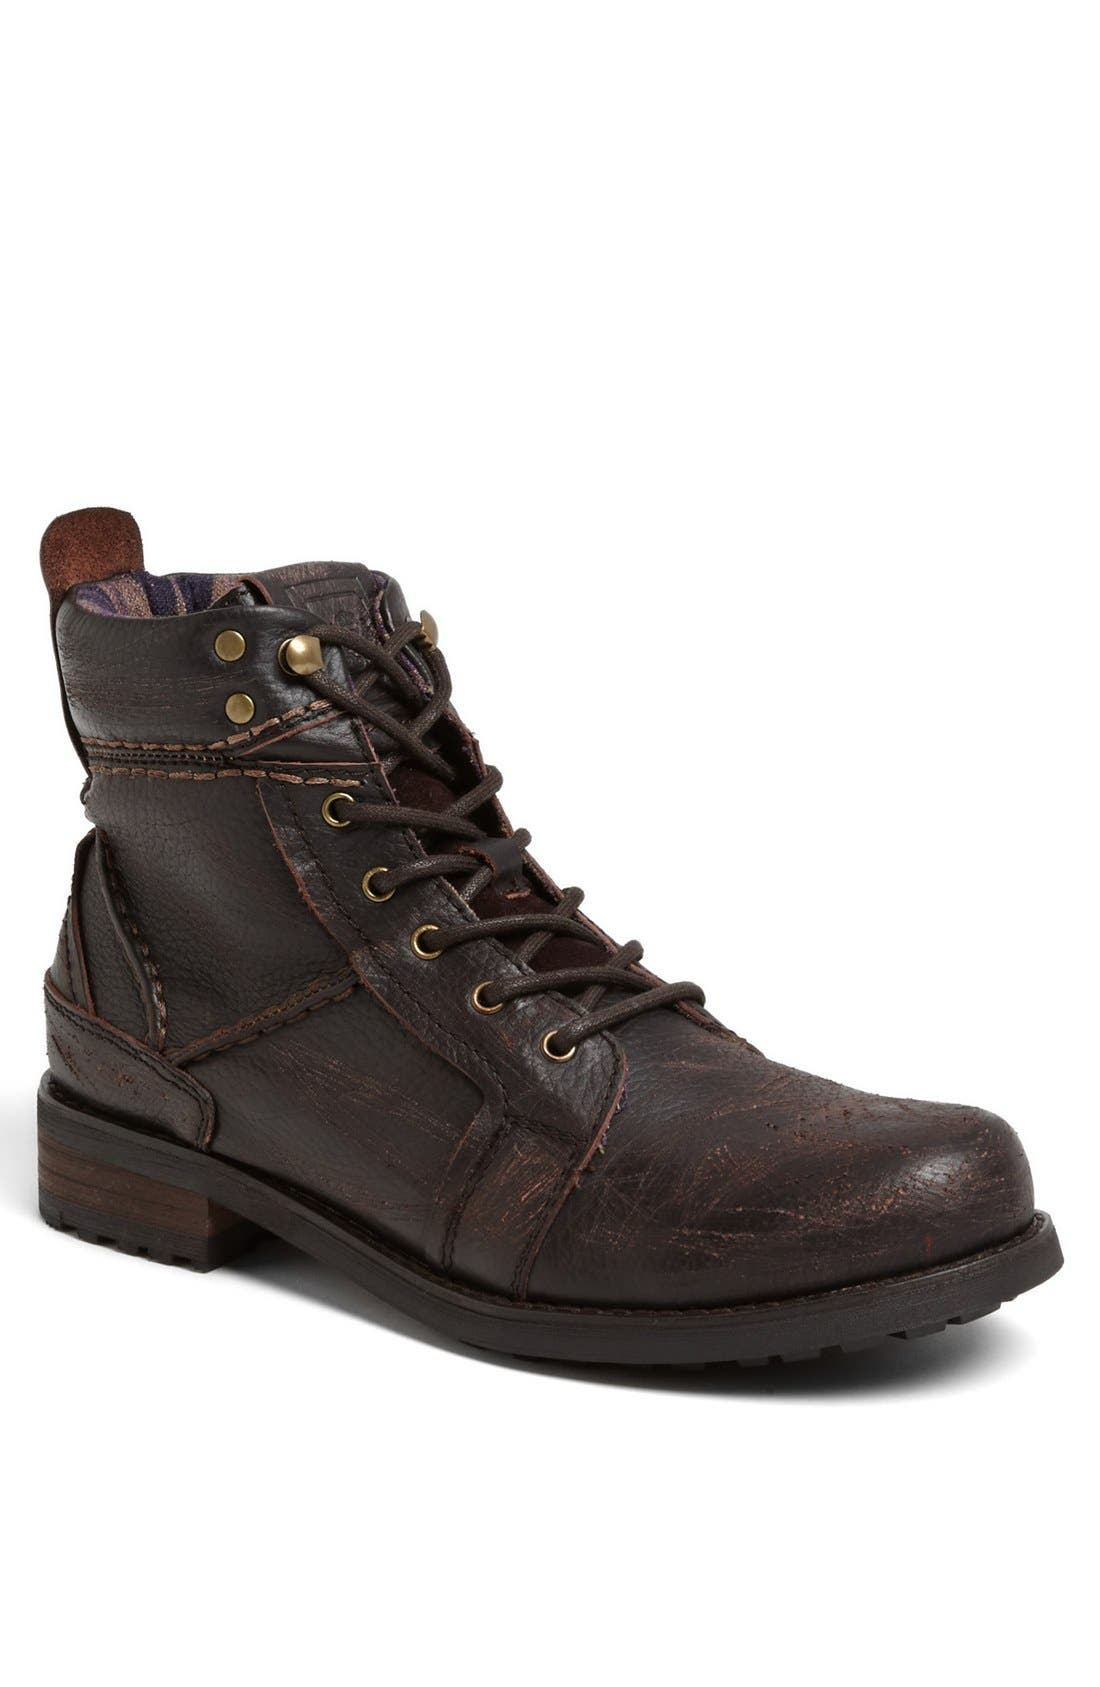 Main Image - ZIGIny 'Catcher' Plain Toe Boot